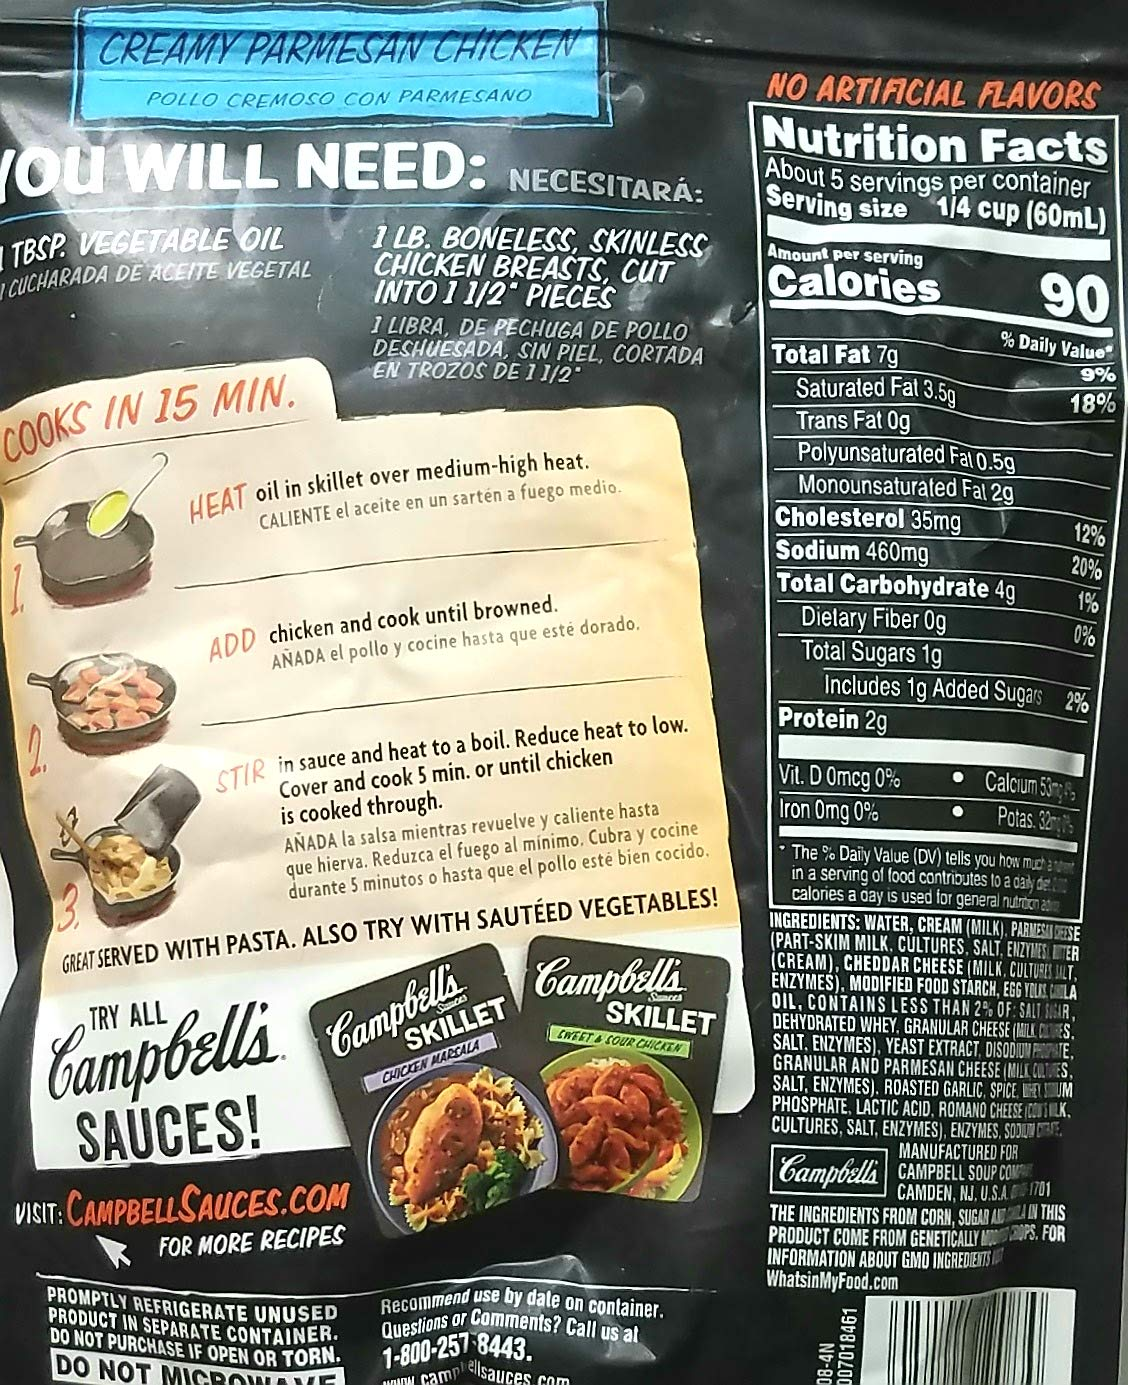 Amazon.com : Variety Pack Bundle of 8 Campbells Skillet Sauces - Just Add Chicken, Pork, or Shrimp : Grocery & Gourmet Food